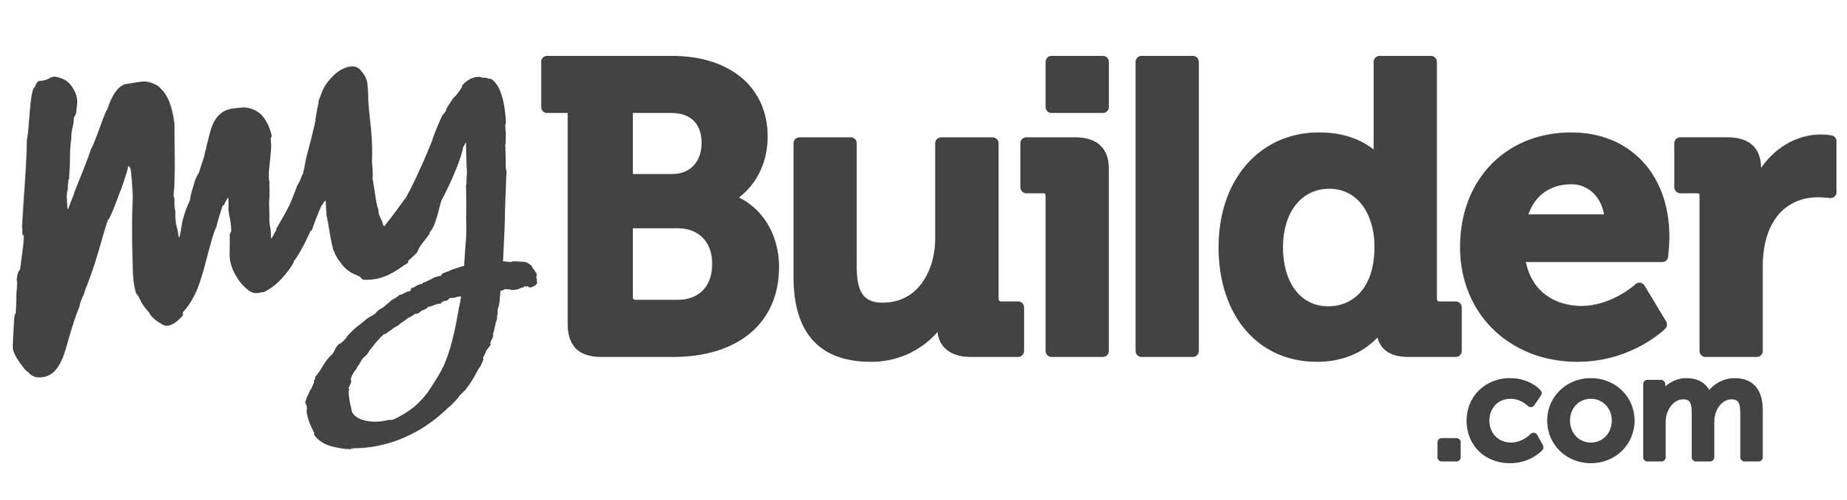 MyBuilder-logo-review-centre-jpg-2.jpg